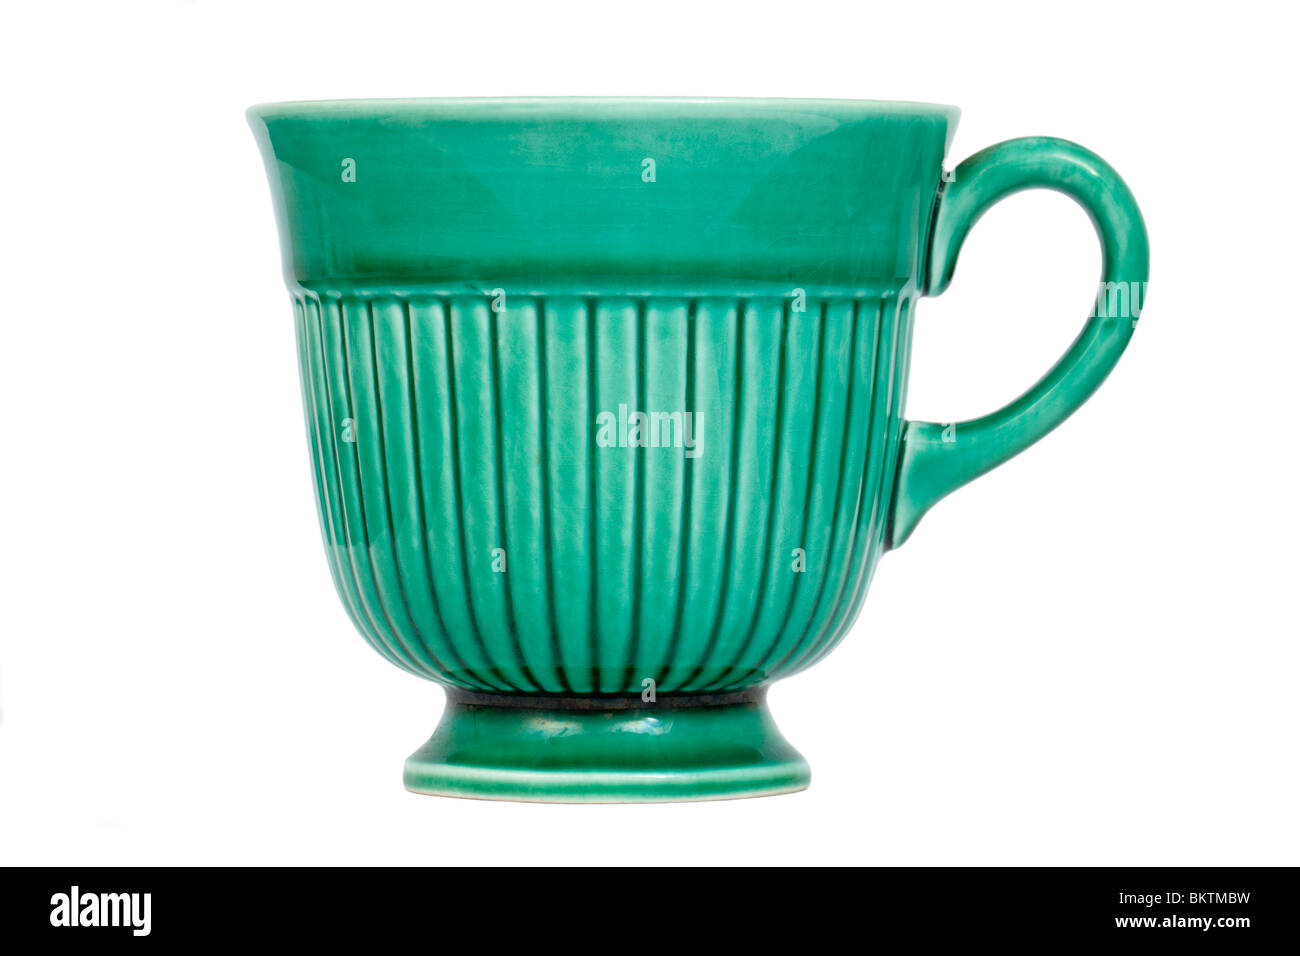 Vintage green Wedgwood of Etruria & Barlaston English pottery tea cup - Stock Image